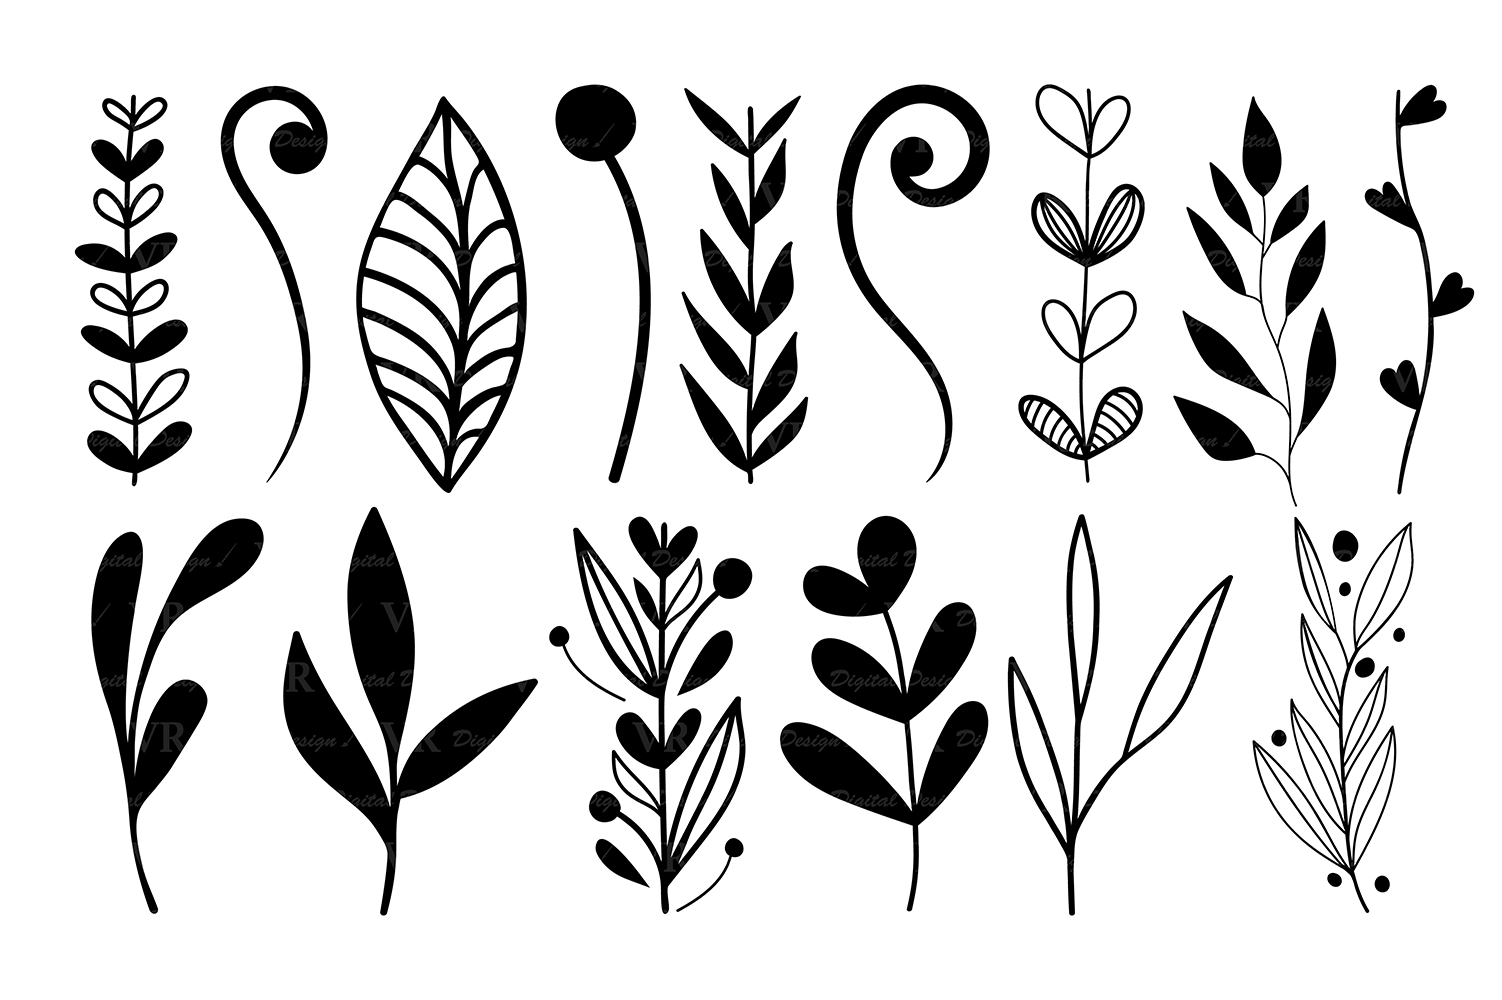 Clipart elements for design image royalty free library Wreaths Clipart, Hand drawn black design elements, Digital wreath, laurels,  leaves and branches, Wedding clipart, Vector image royalty free library